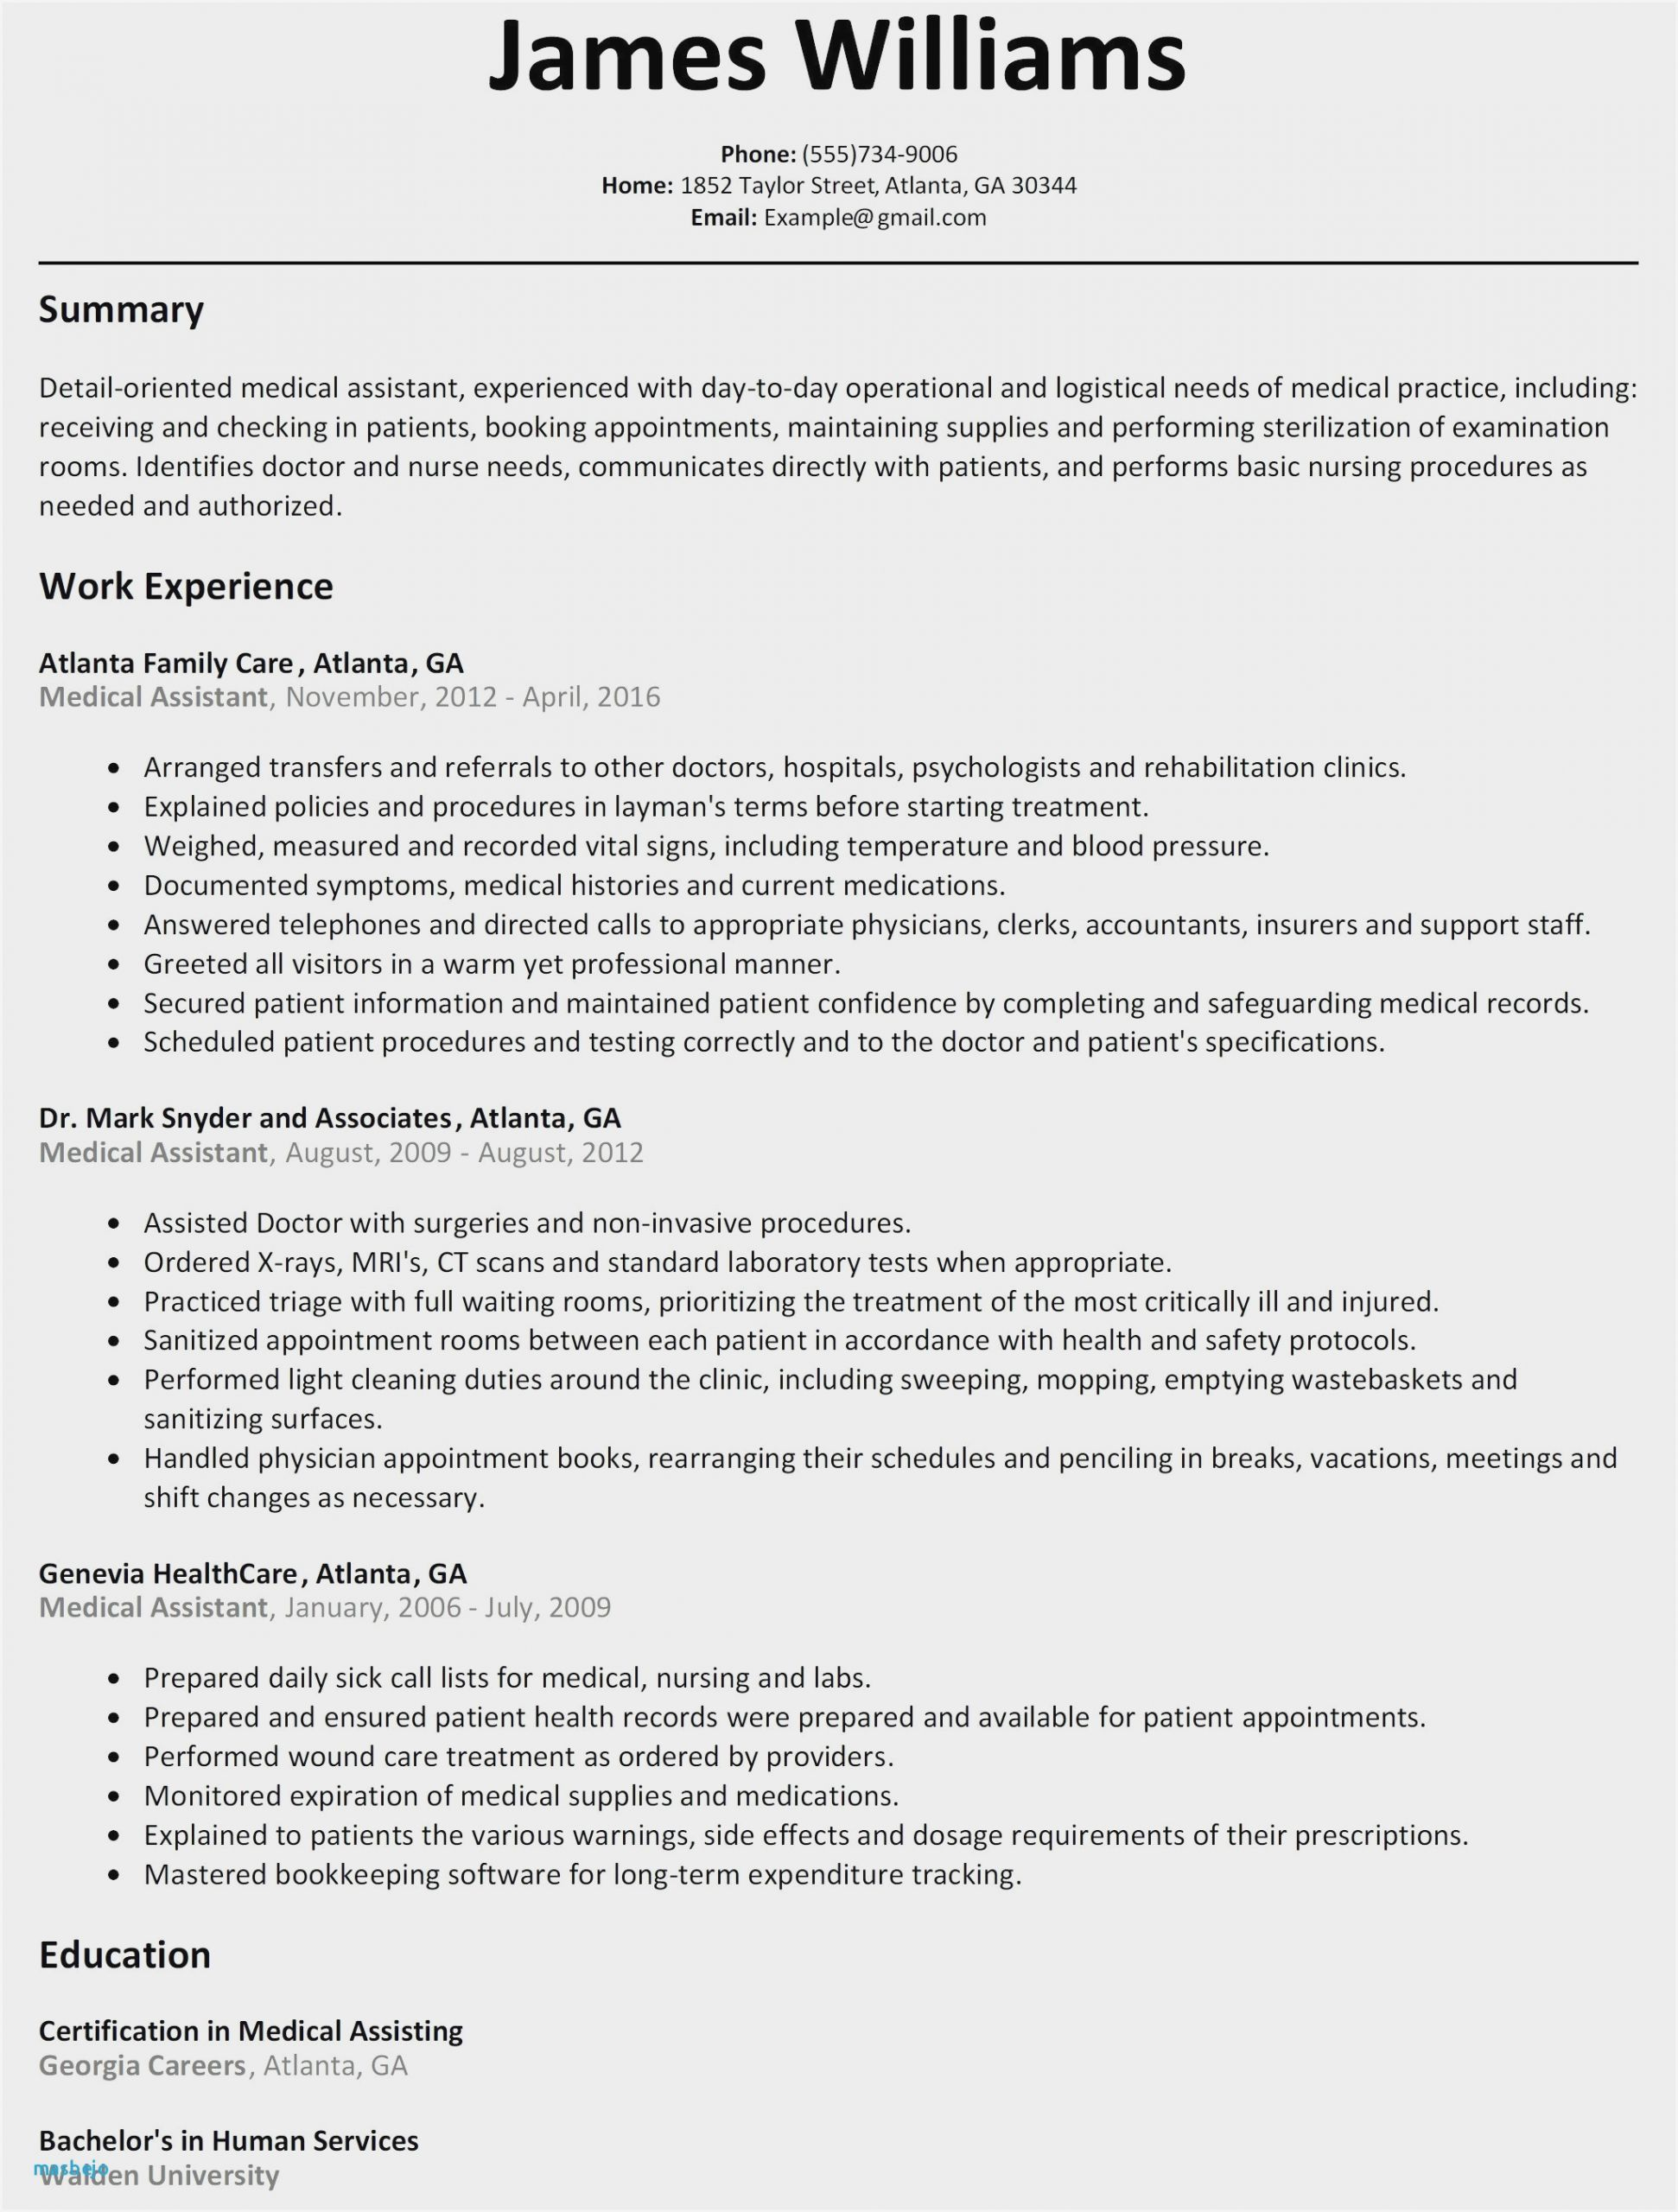 resume objective statement examples nursing sample good objectives for healthcare scaled Resume Good Resume Objectives For Healthcare